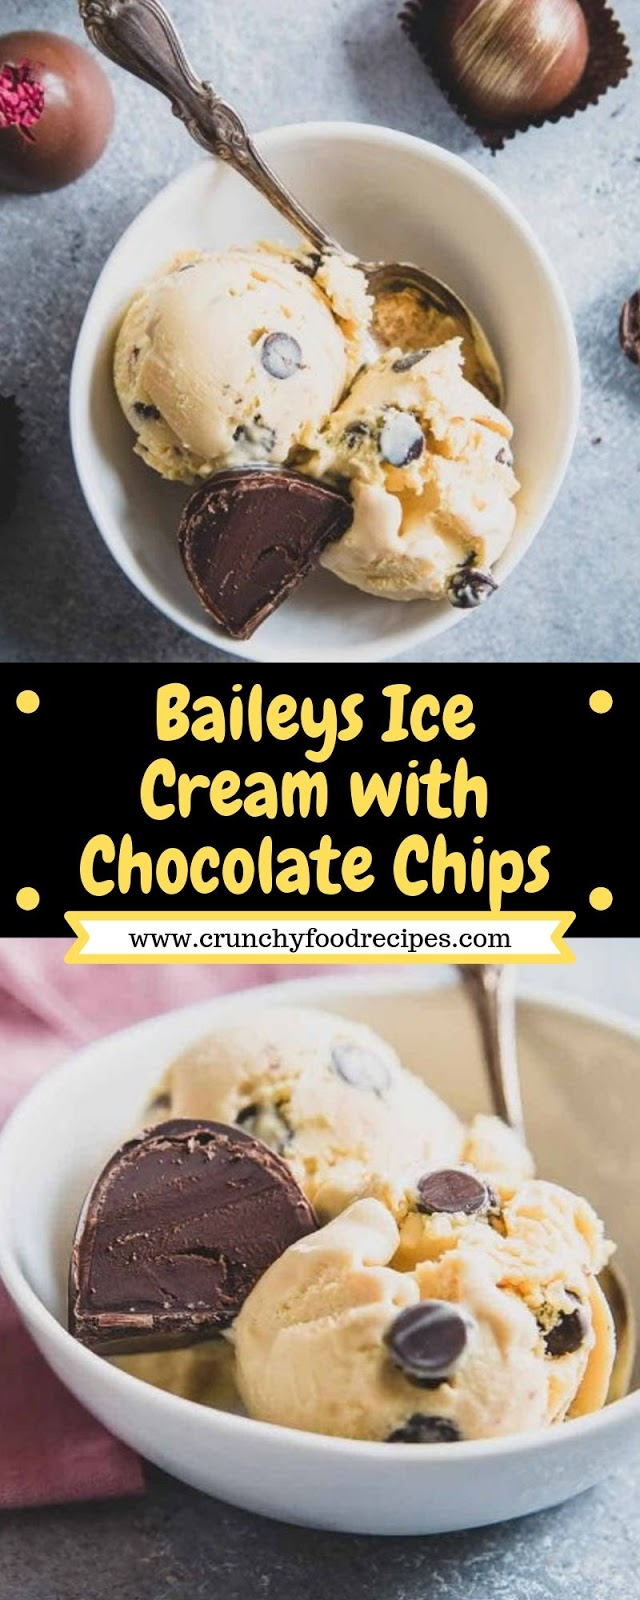 Baileys Ice Cream with Chocolate Chips